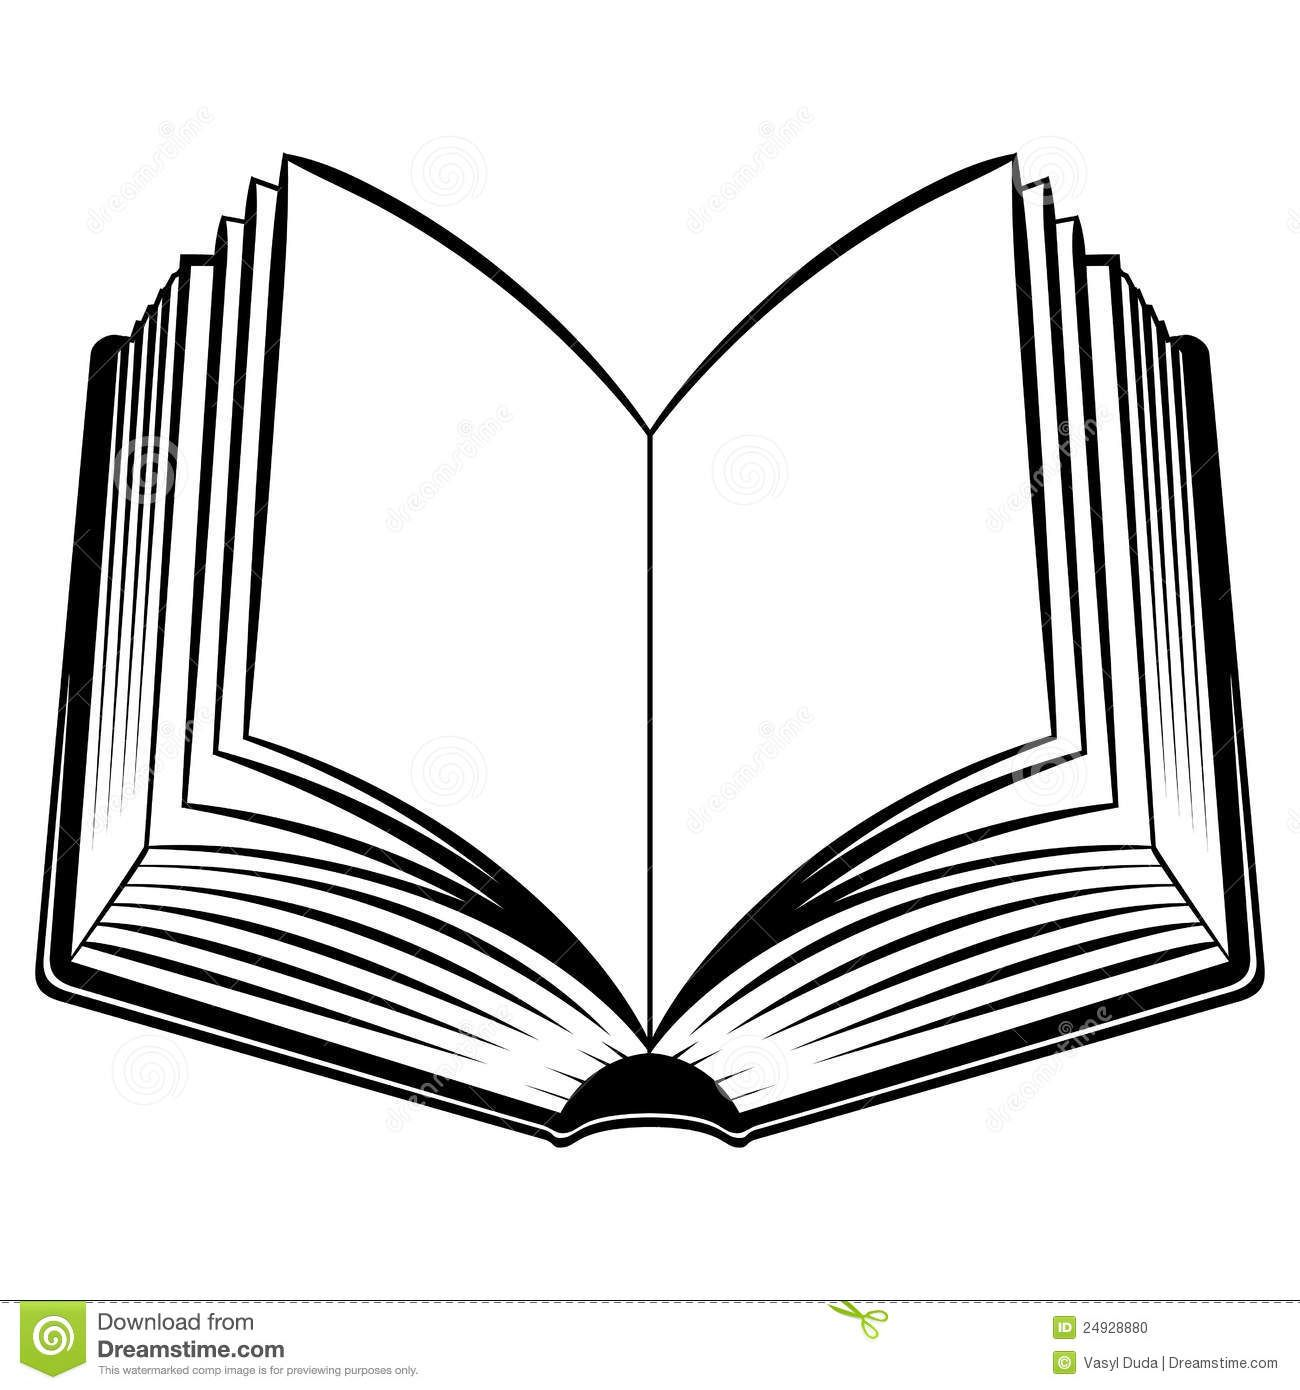 Book sketch clipart banner free library Image result for books outline | Pose reference | Open book, Open ... banner free library